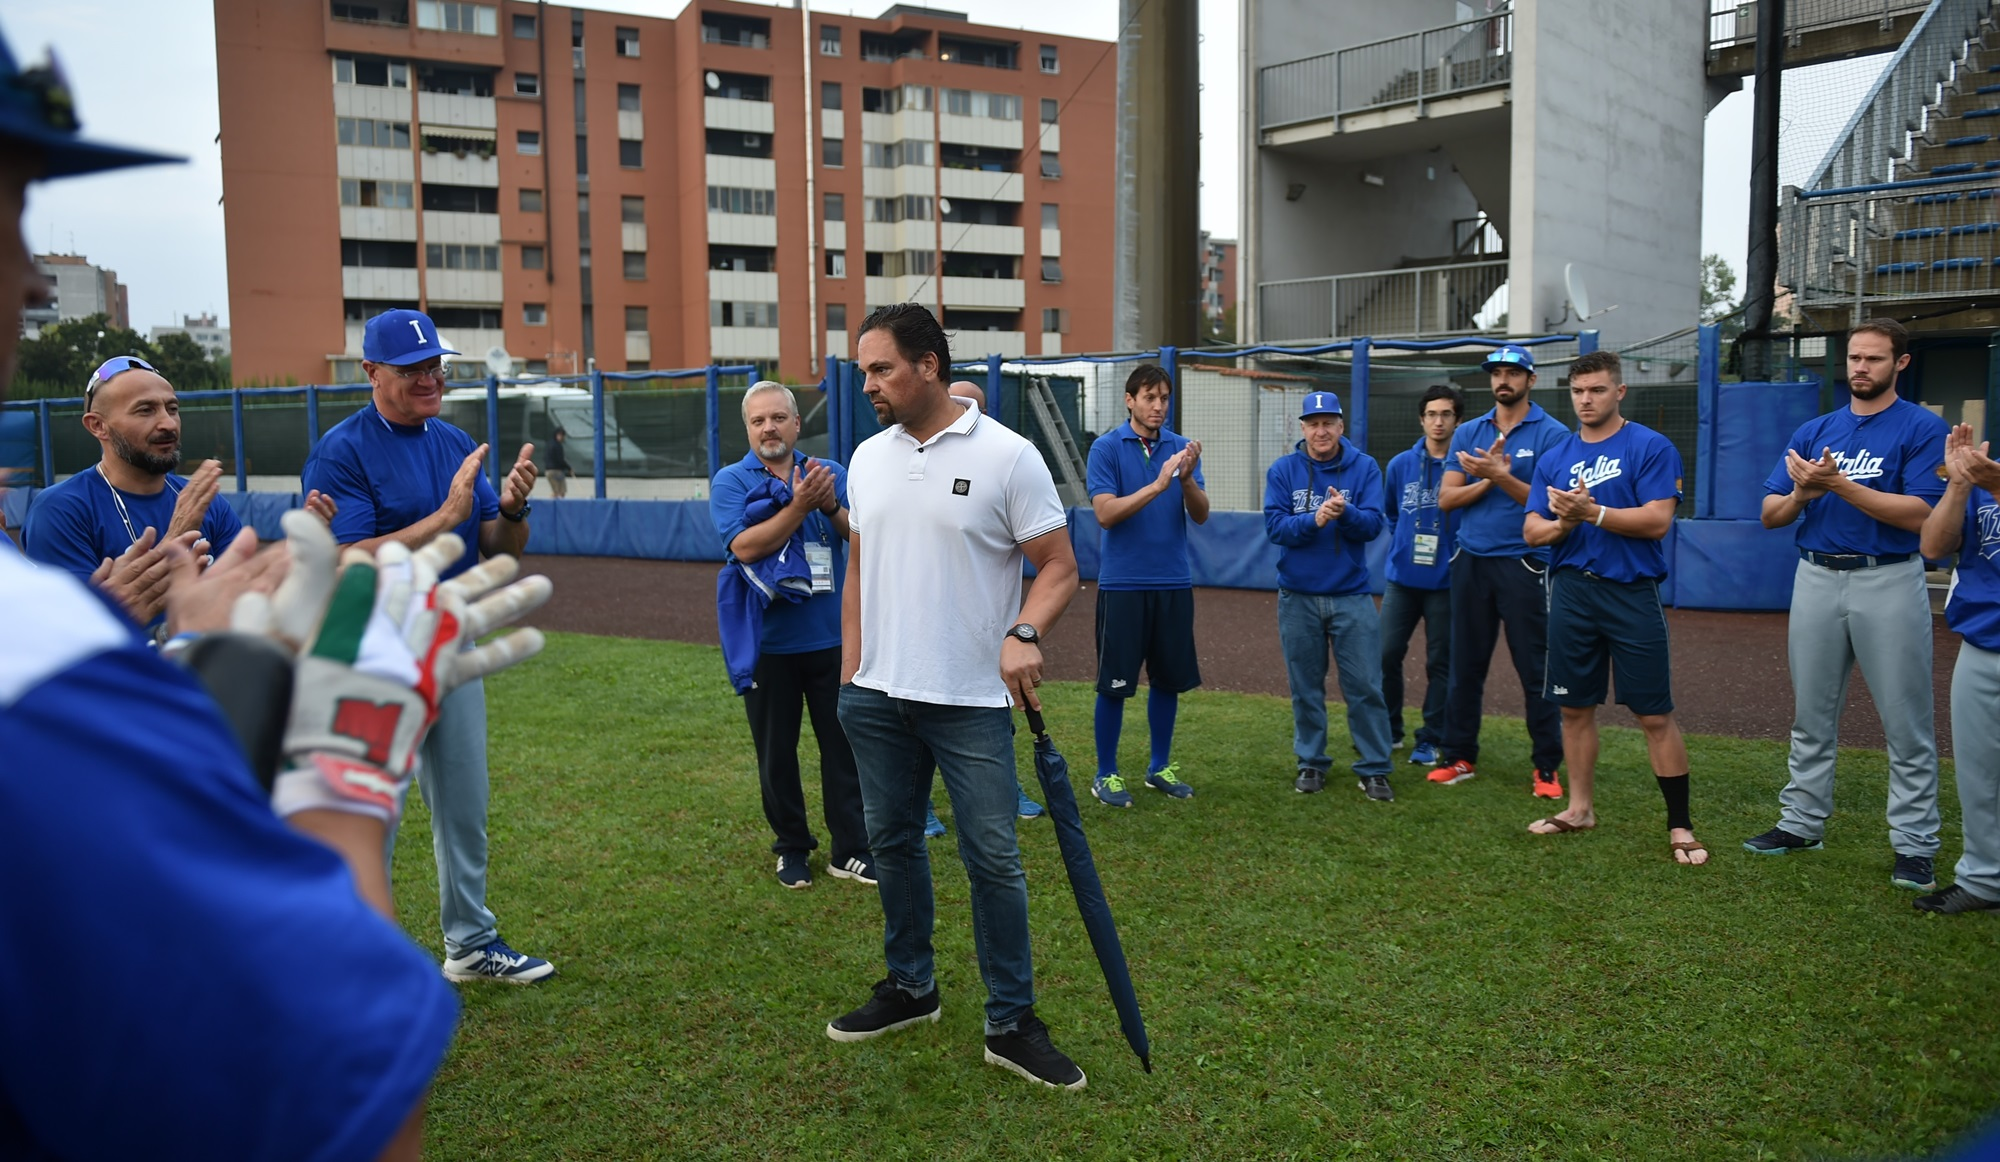 Former Italy's player and coach Mike Piazza met players and coaches before the game